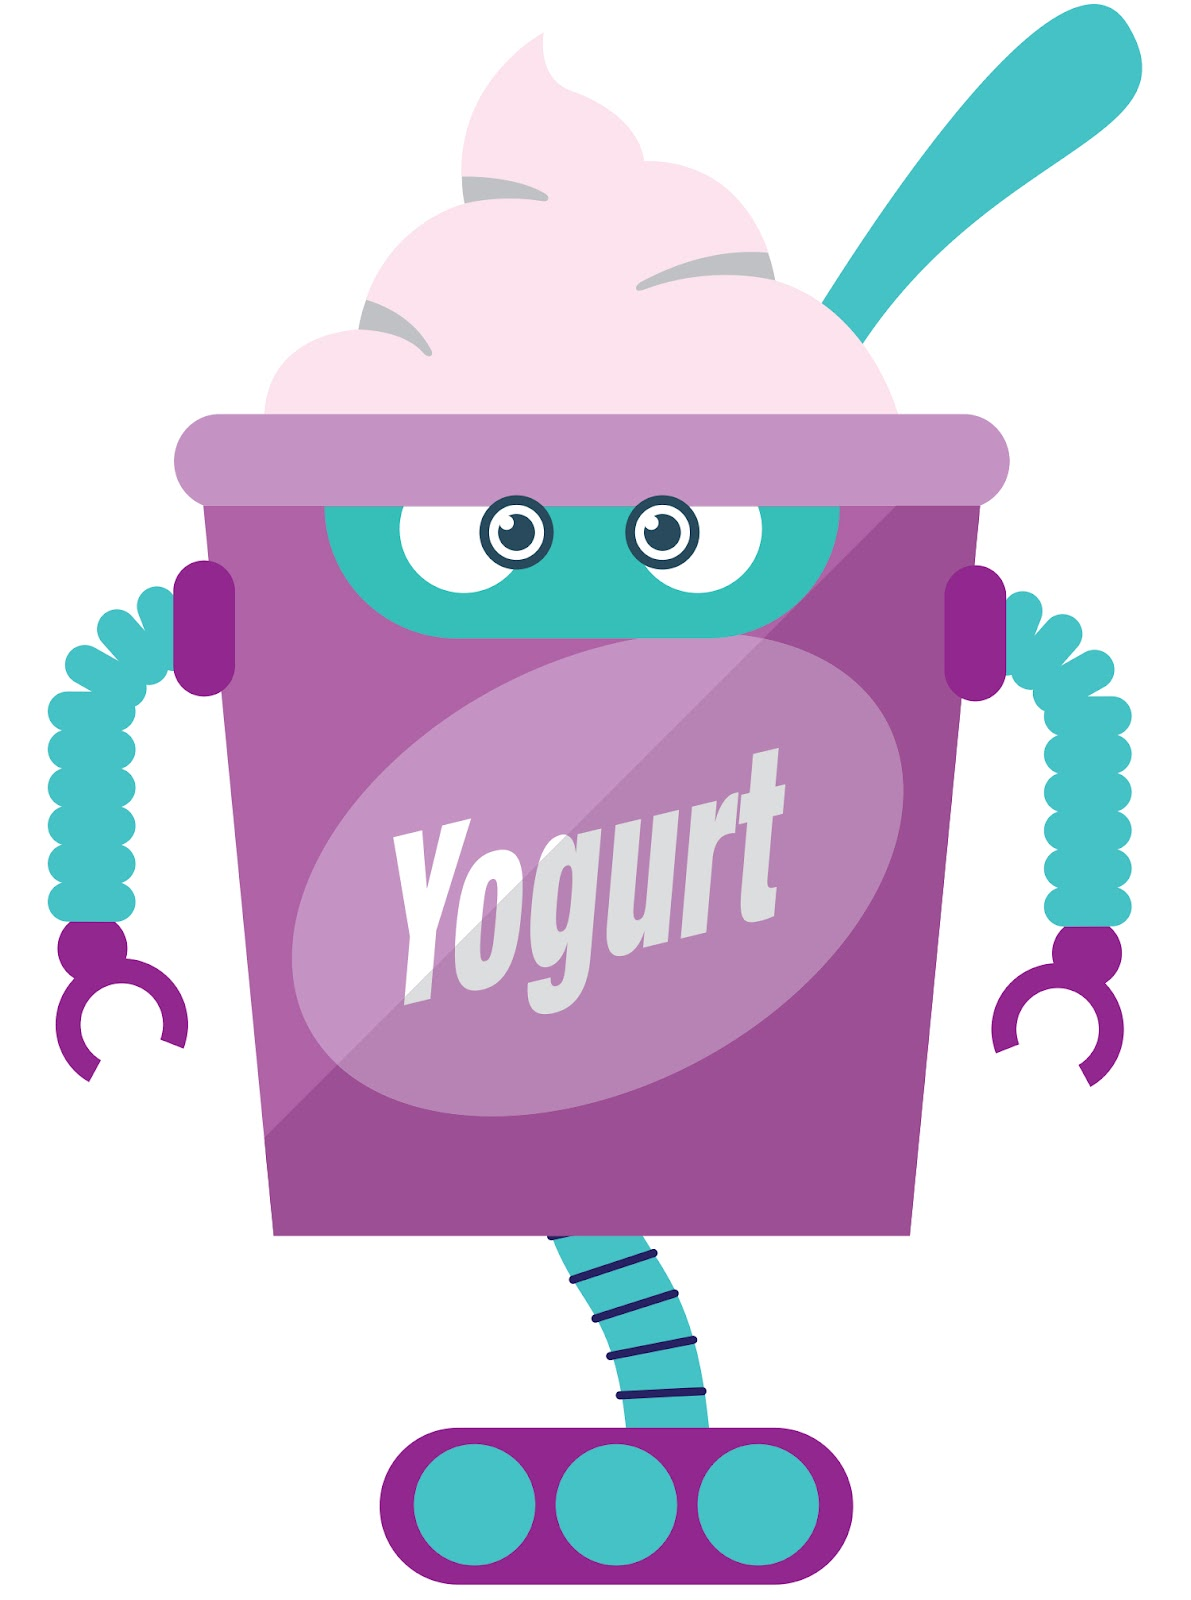 Cosmic looking Purple yogurt cup with face and arms and eyes